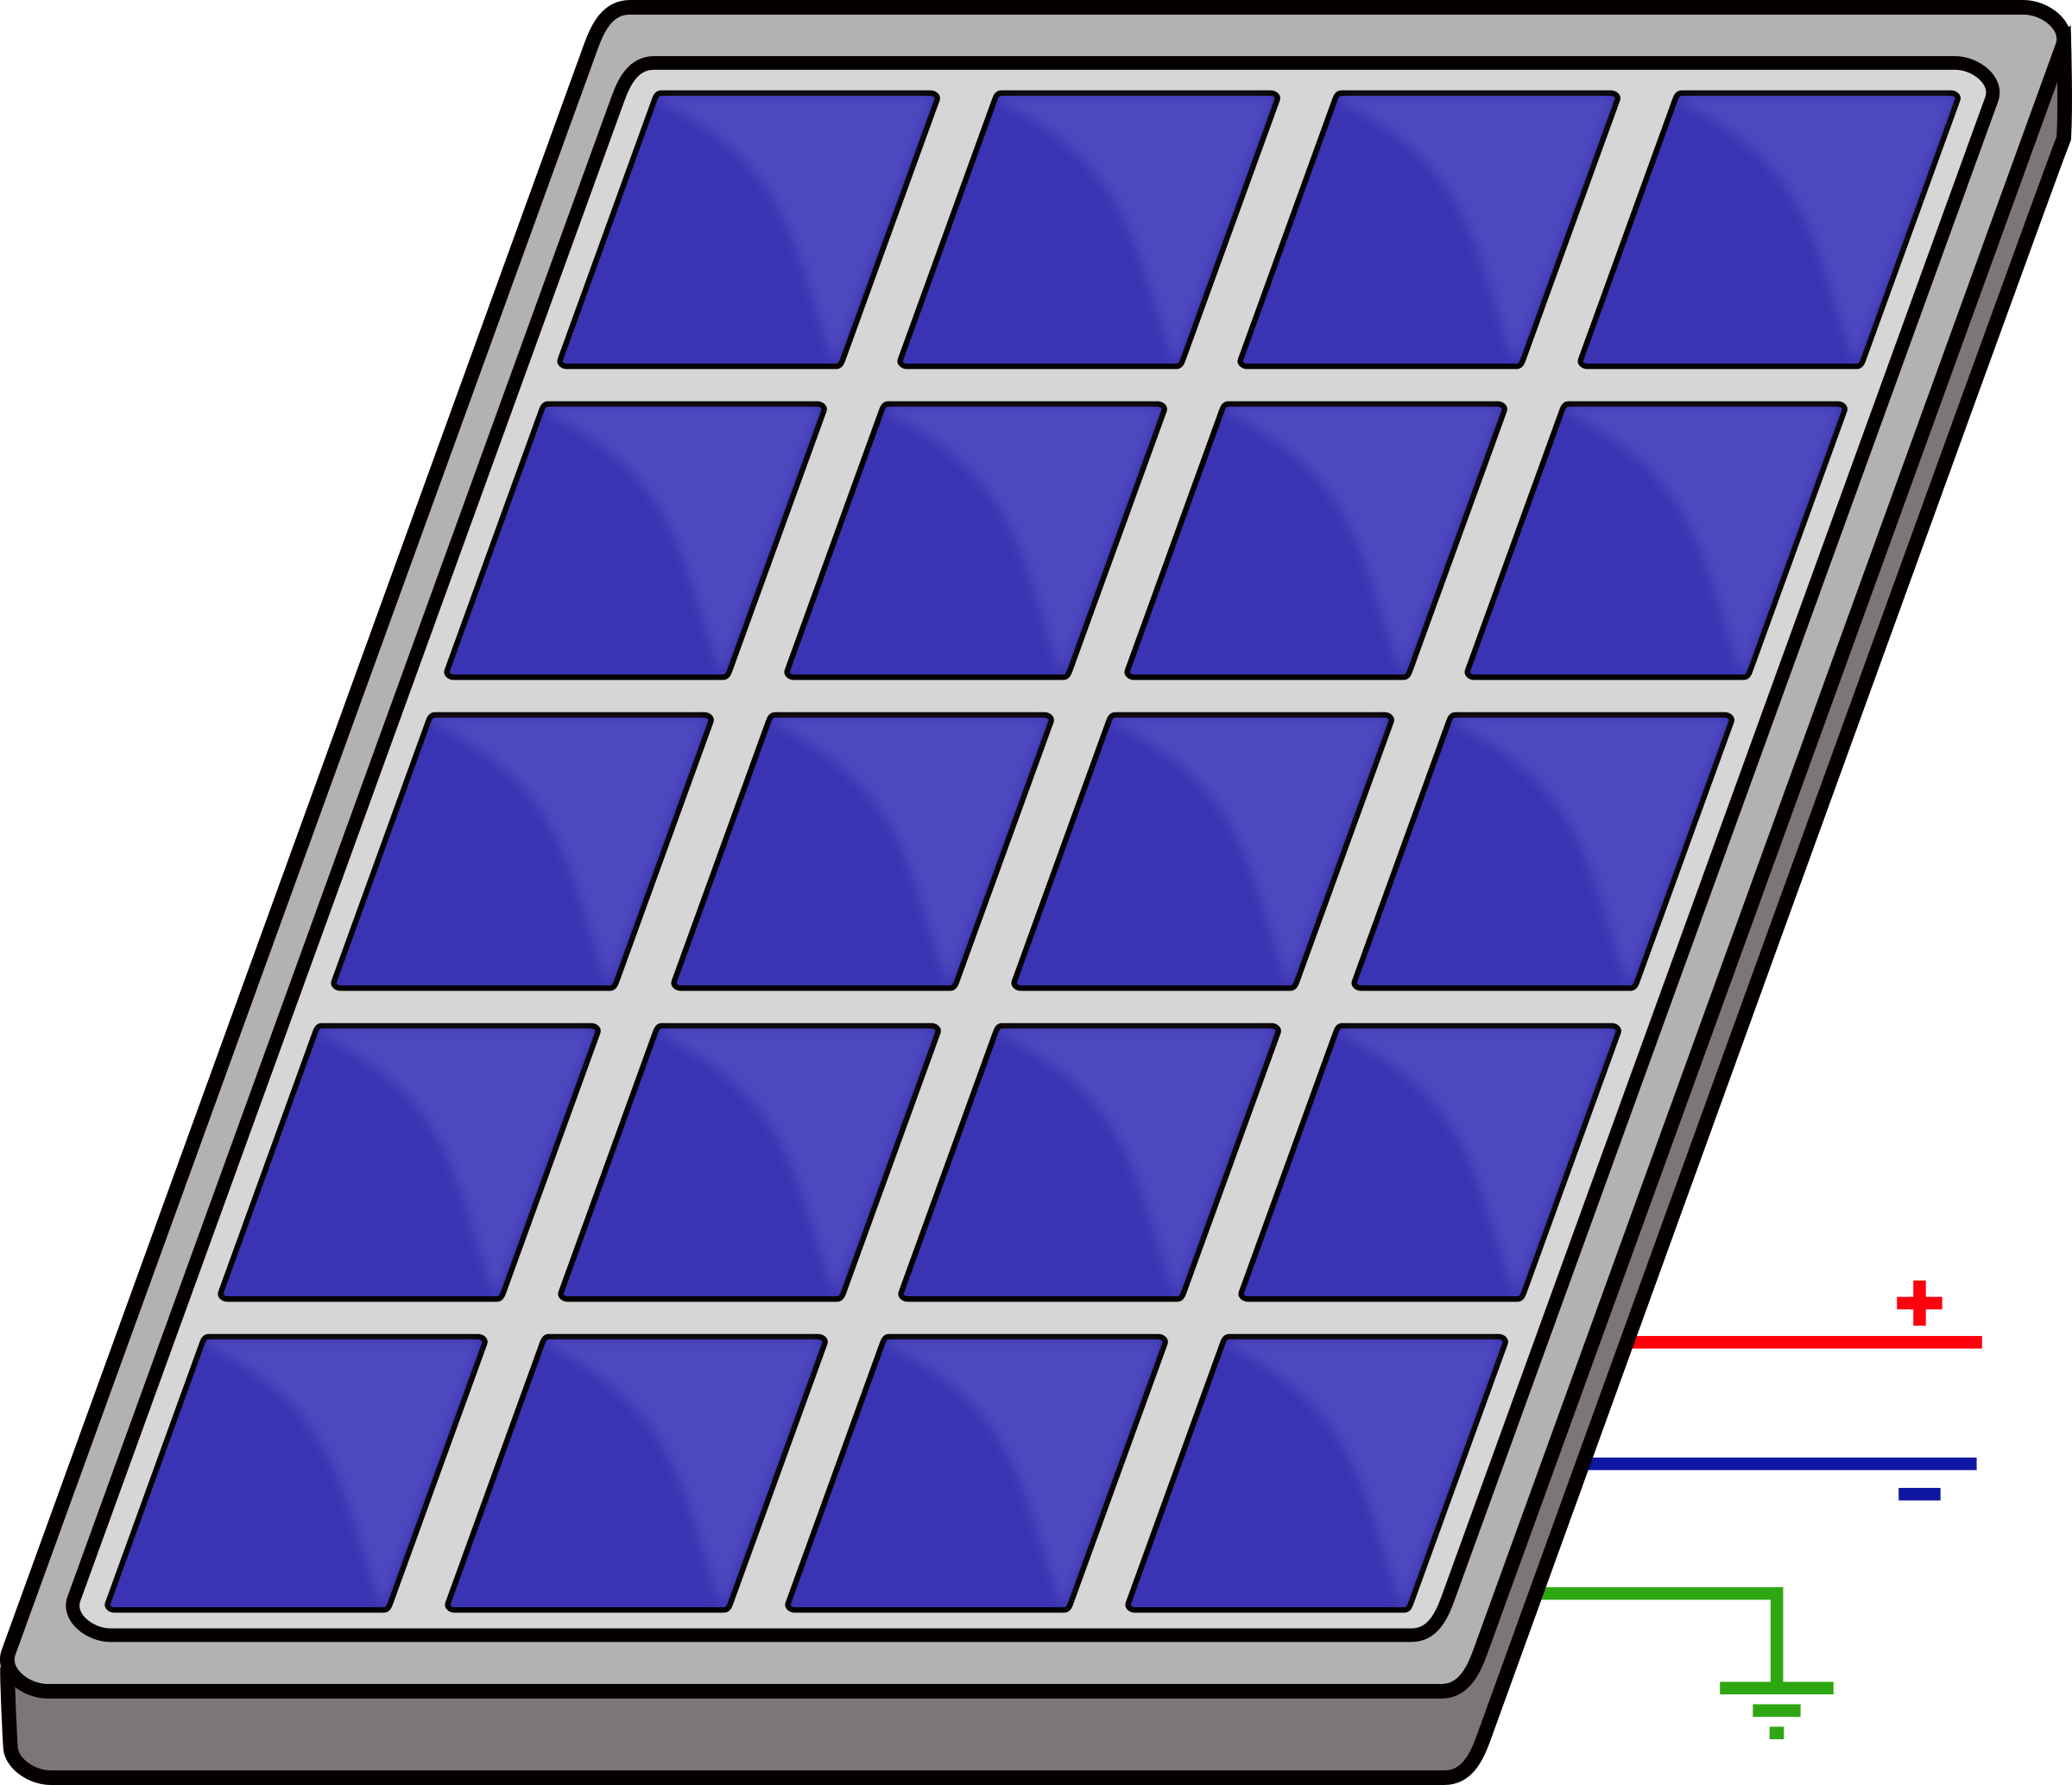 Simple PV panel by flomoto